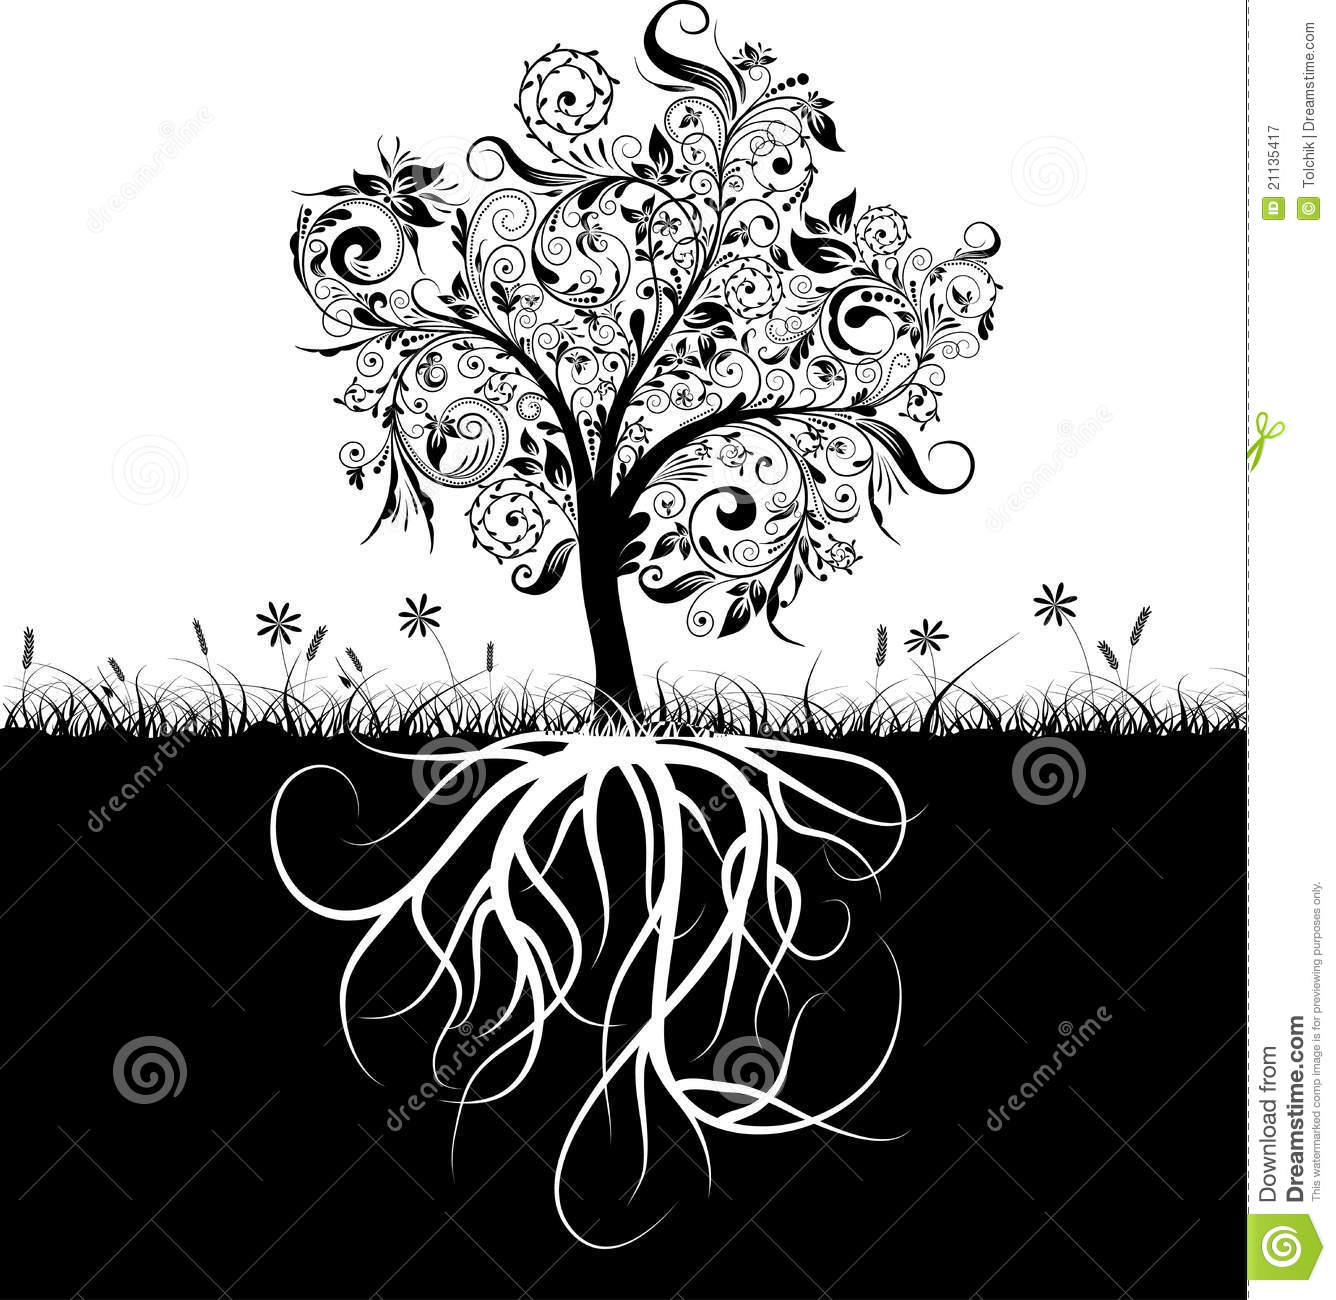 More similar stock images of ` Decorative tree and roots, grass `